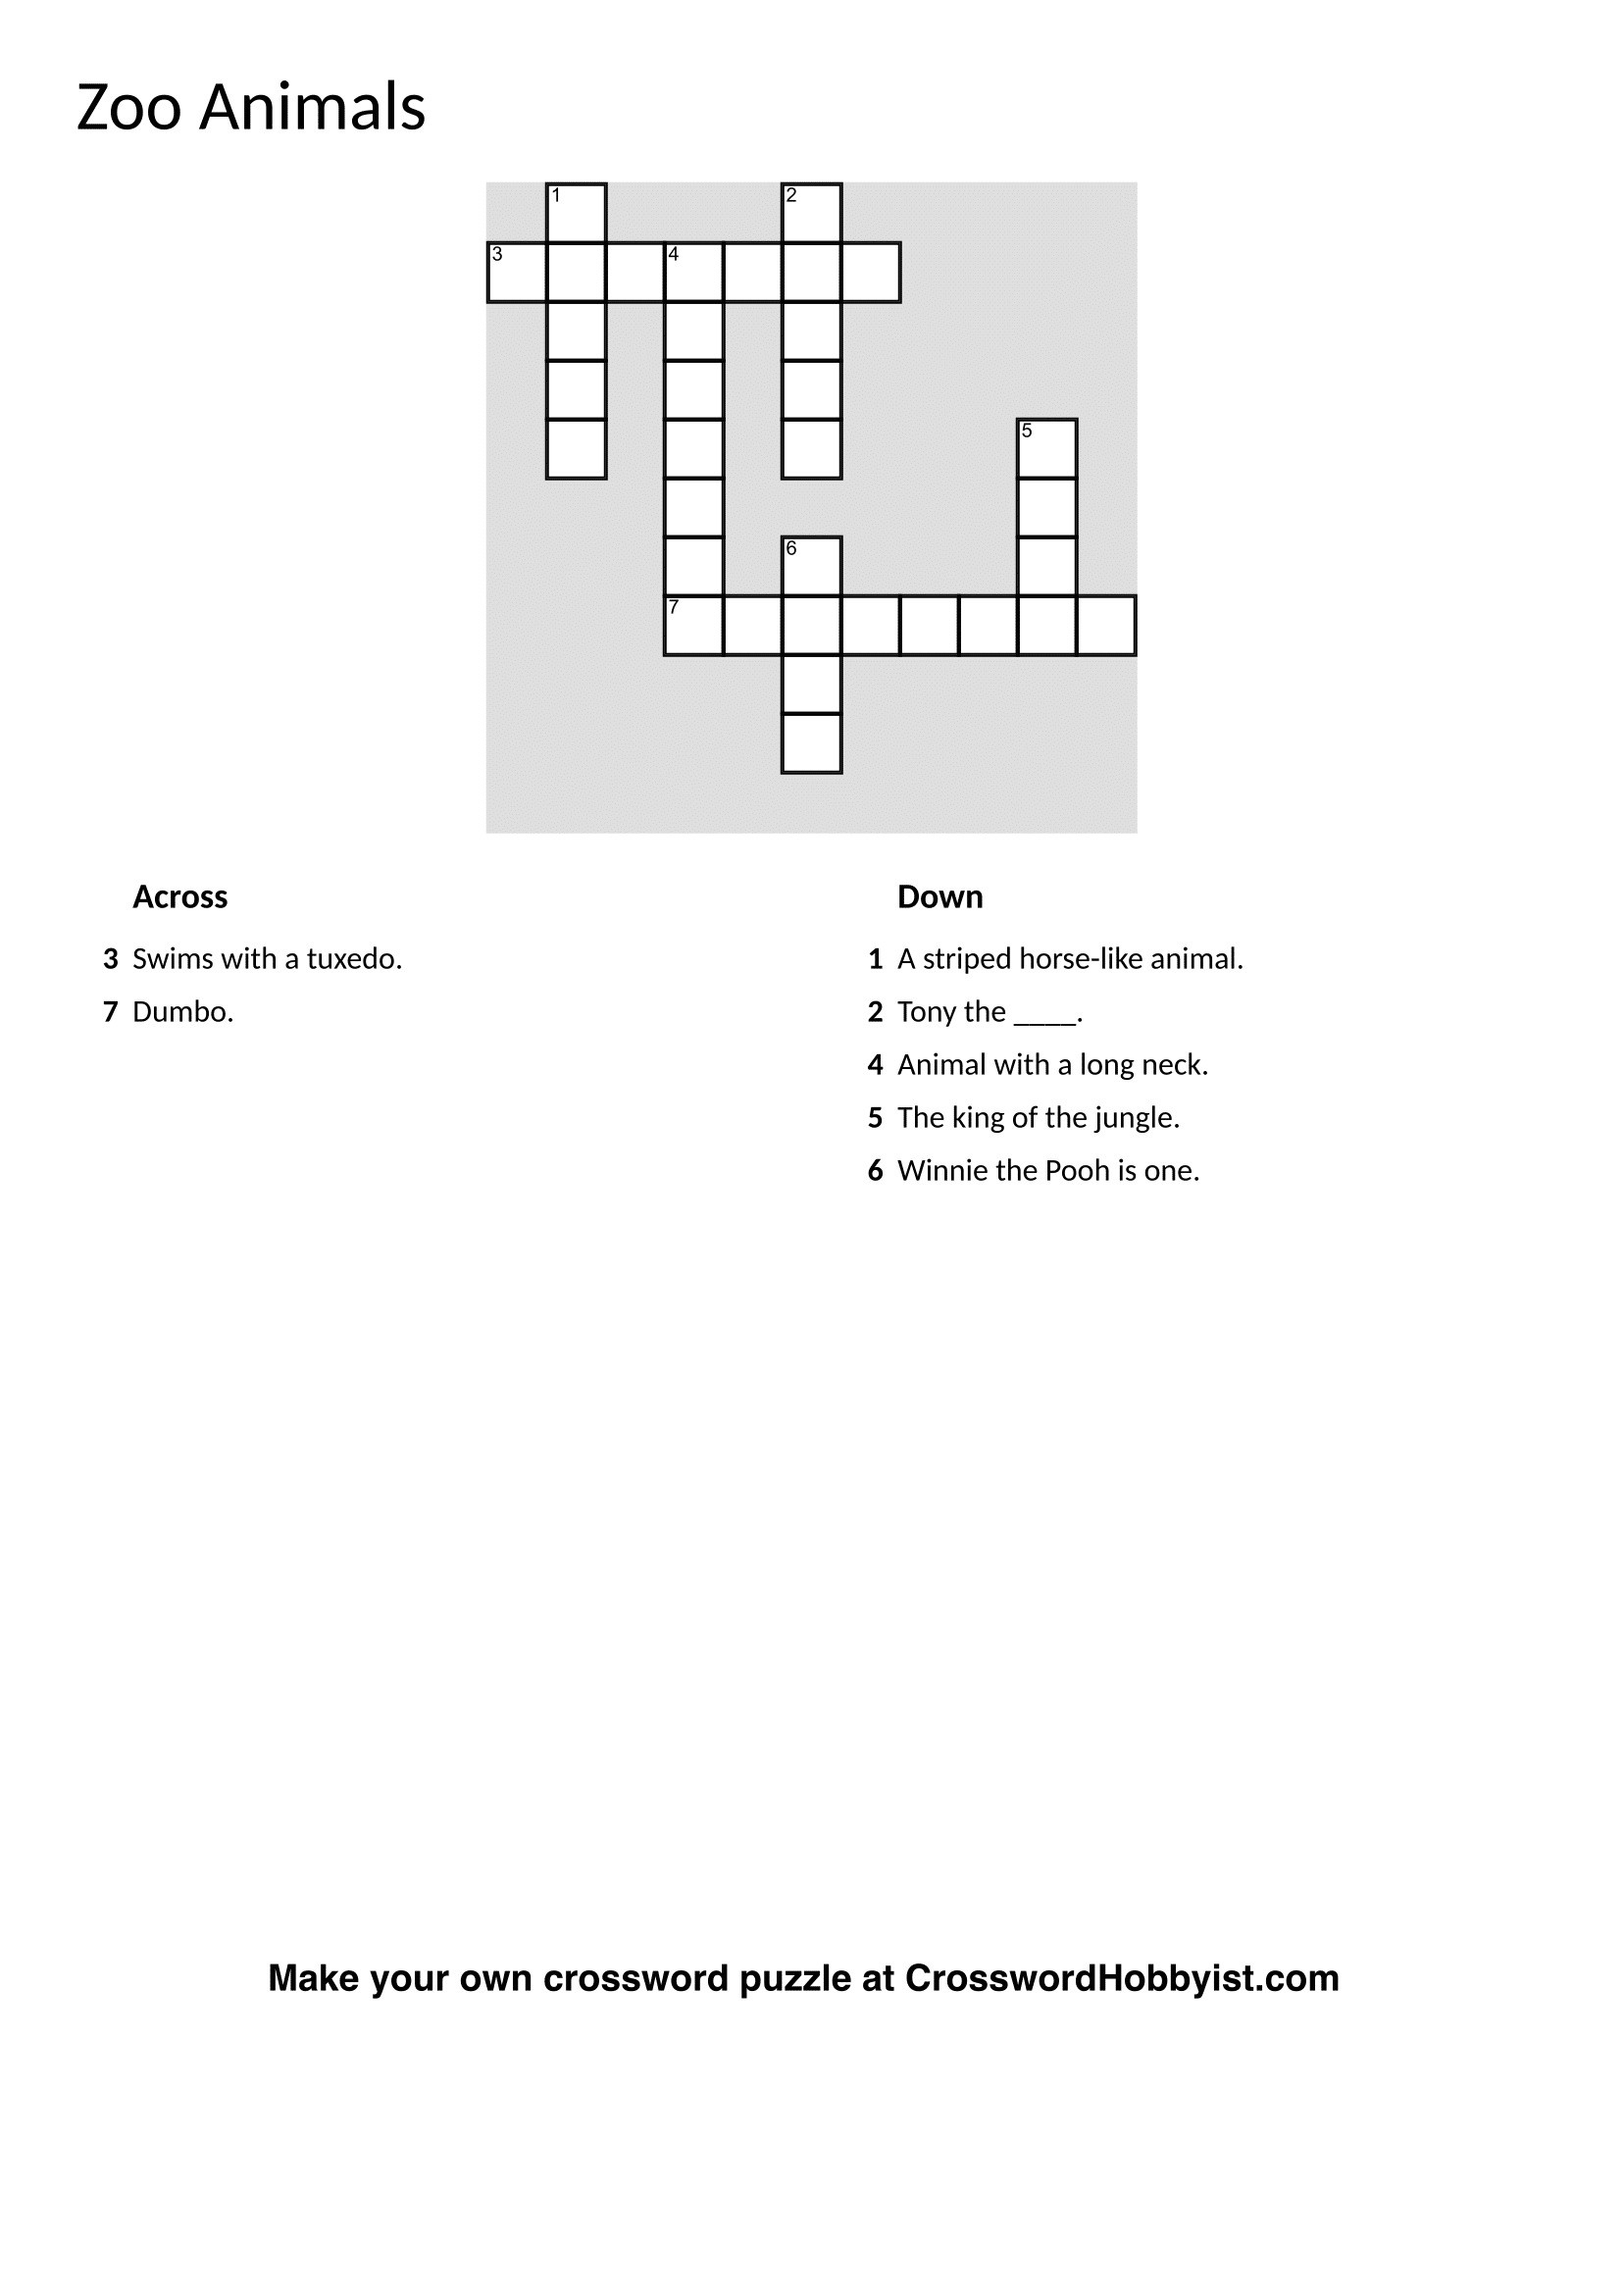 Crossword Puzzle Maker Online Free Printable Crosswords Jigsaw - Jigsaw Puzzle Maker Free Online Printable